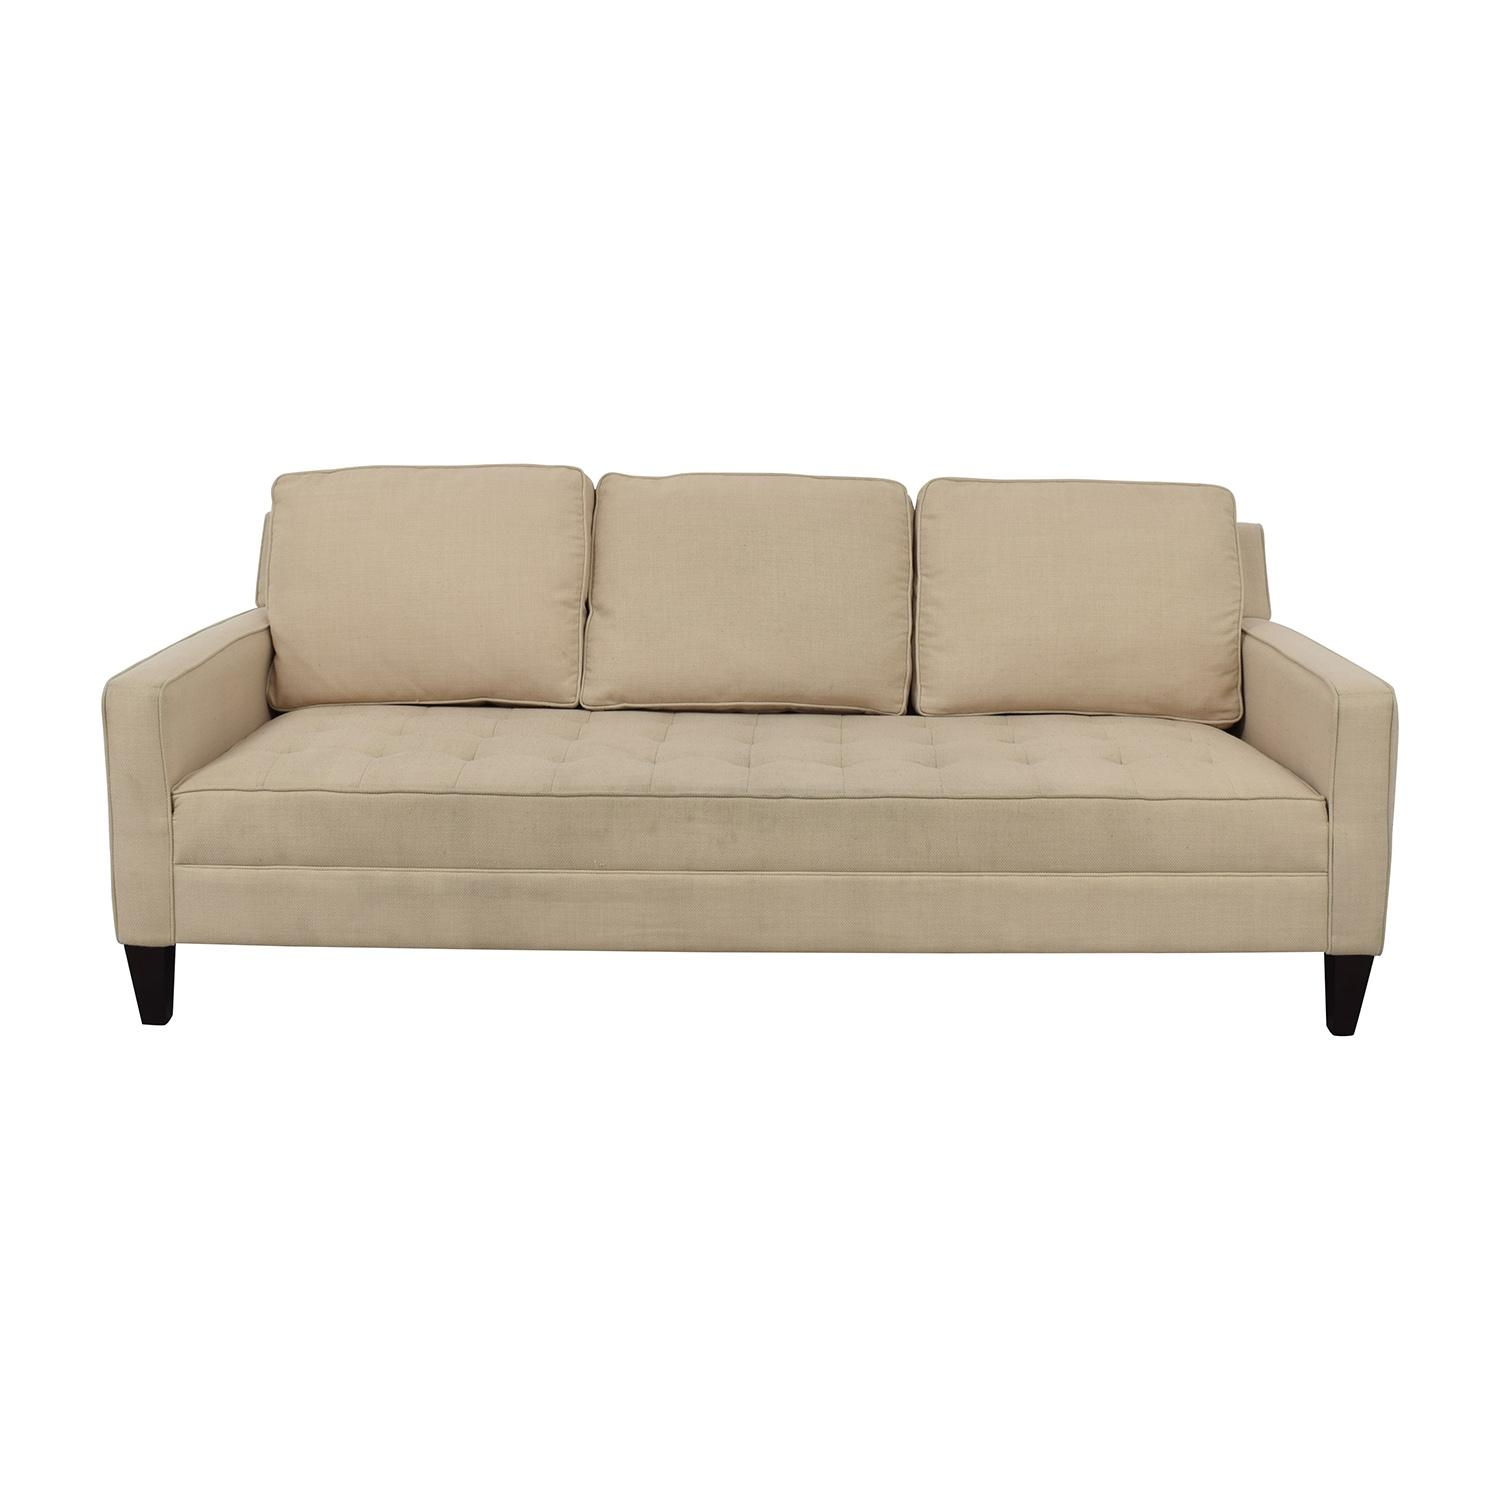 Sofas Center : Sofas Center One Cushion Sofa Google Search Ideas Regarding One Cushion Sofas (Image 19 of 20)